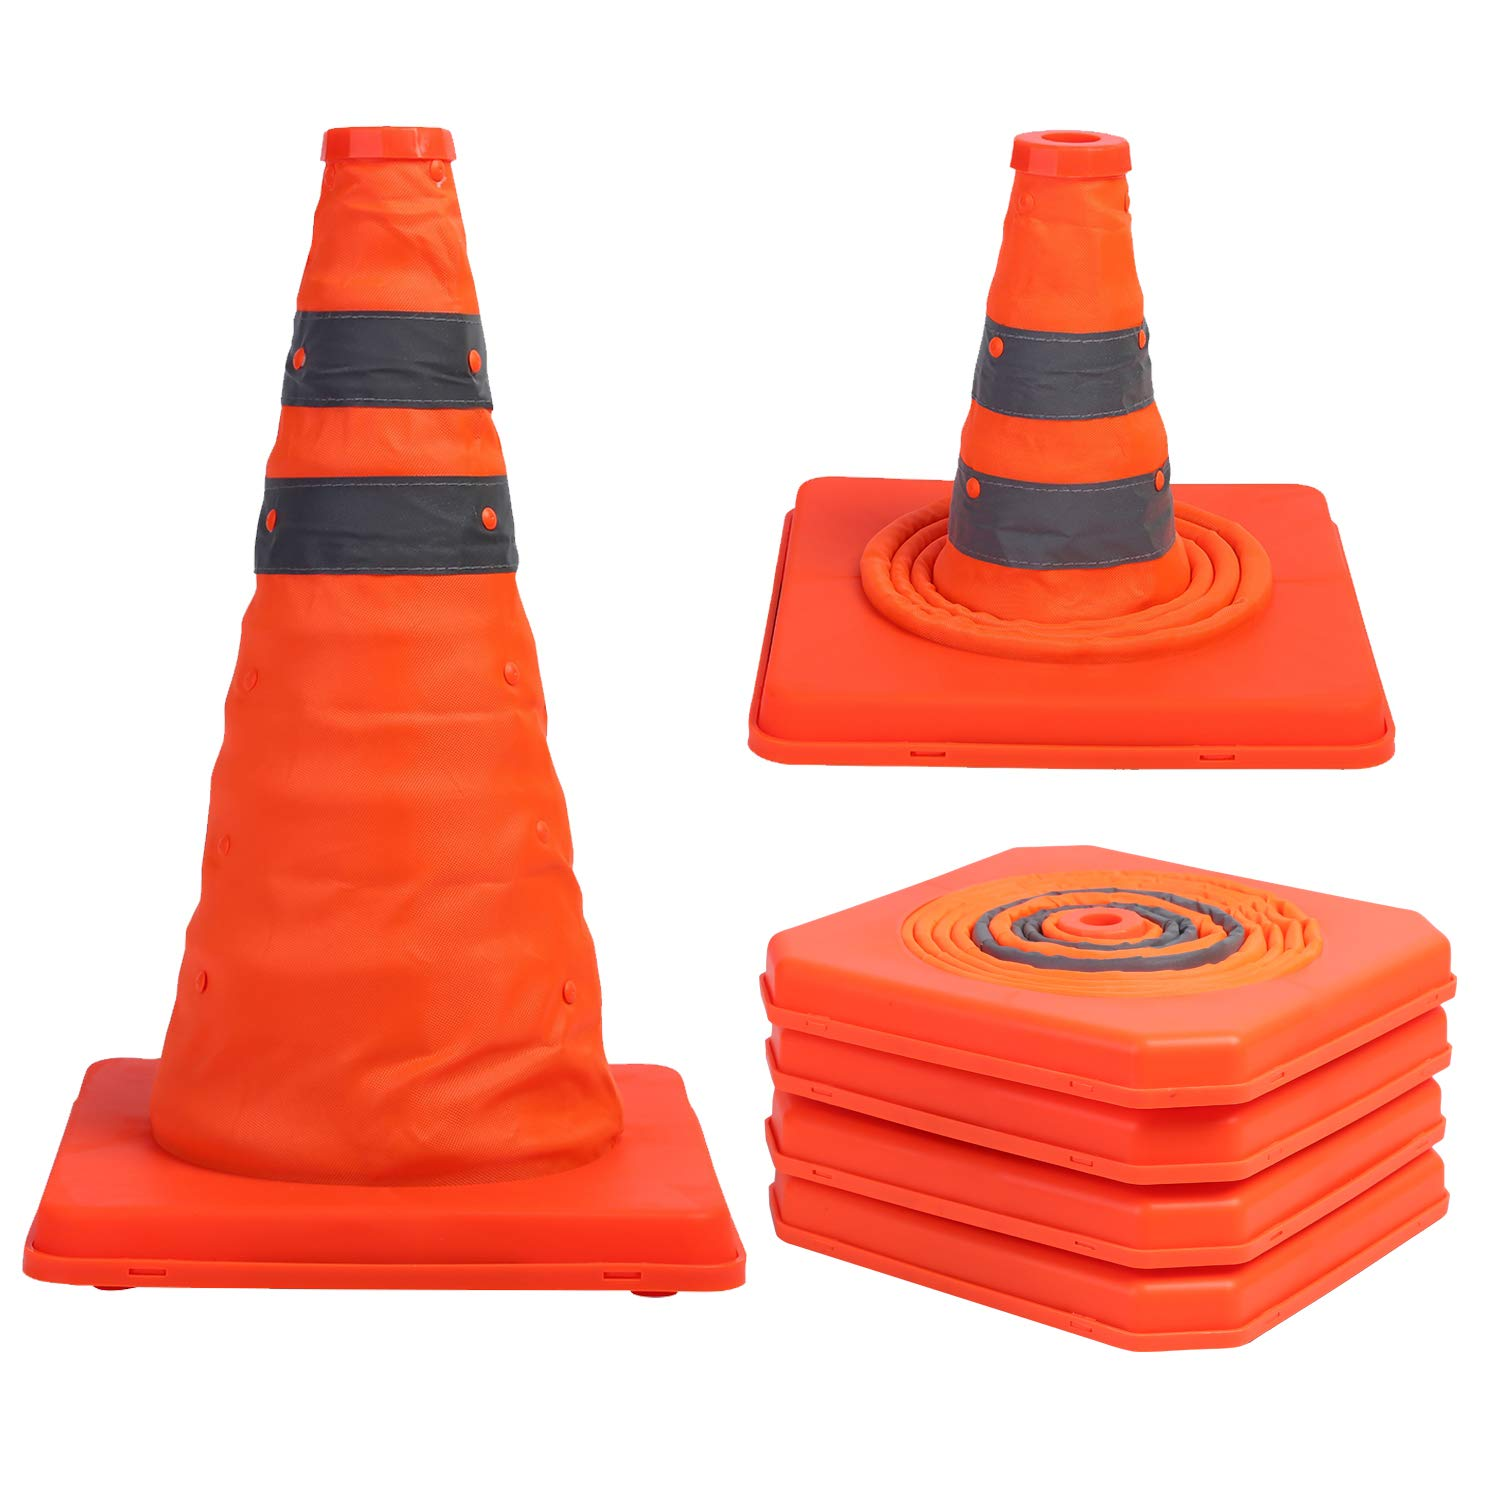 Sunnyglade 4 Pack 15.5 inch Collapsible Traffic Cones Multi Purpose Pop up Reflective Safety Cone (4), Orange by Sunnyglade